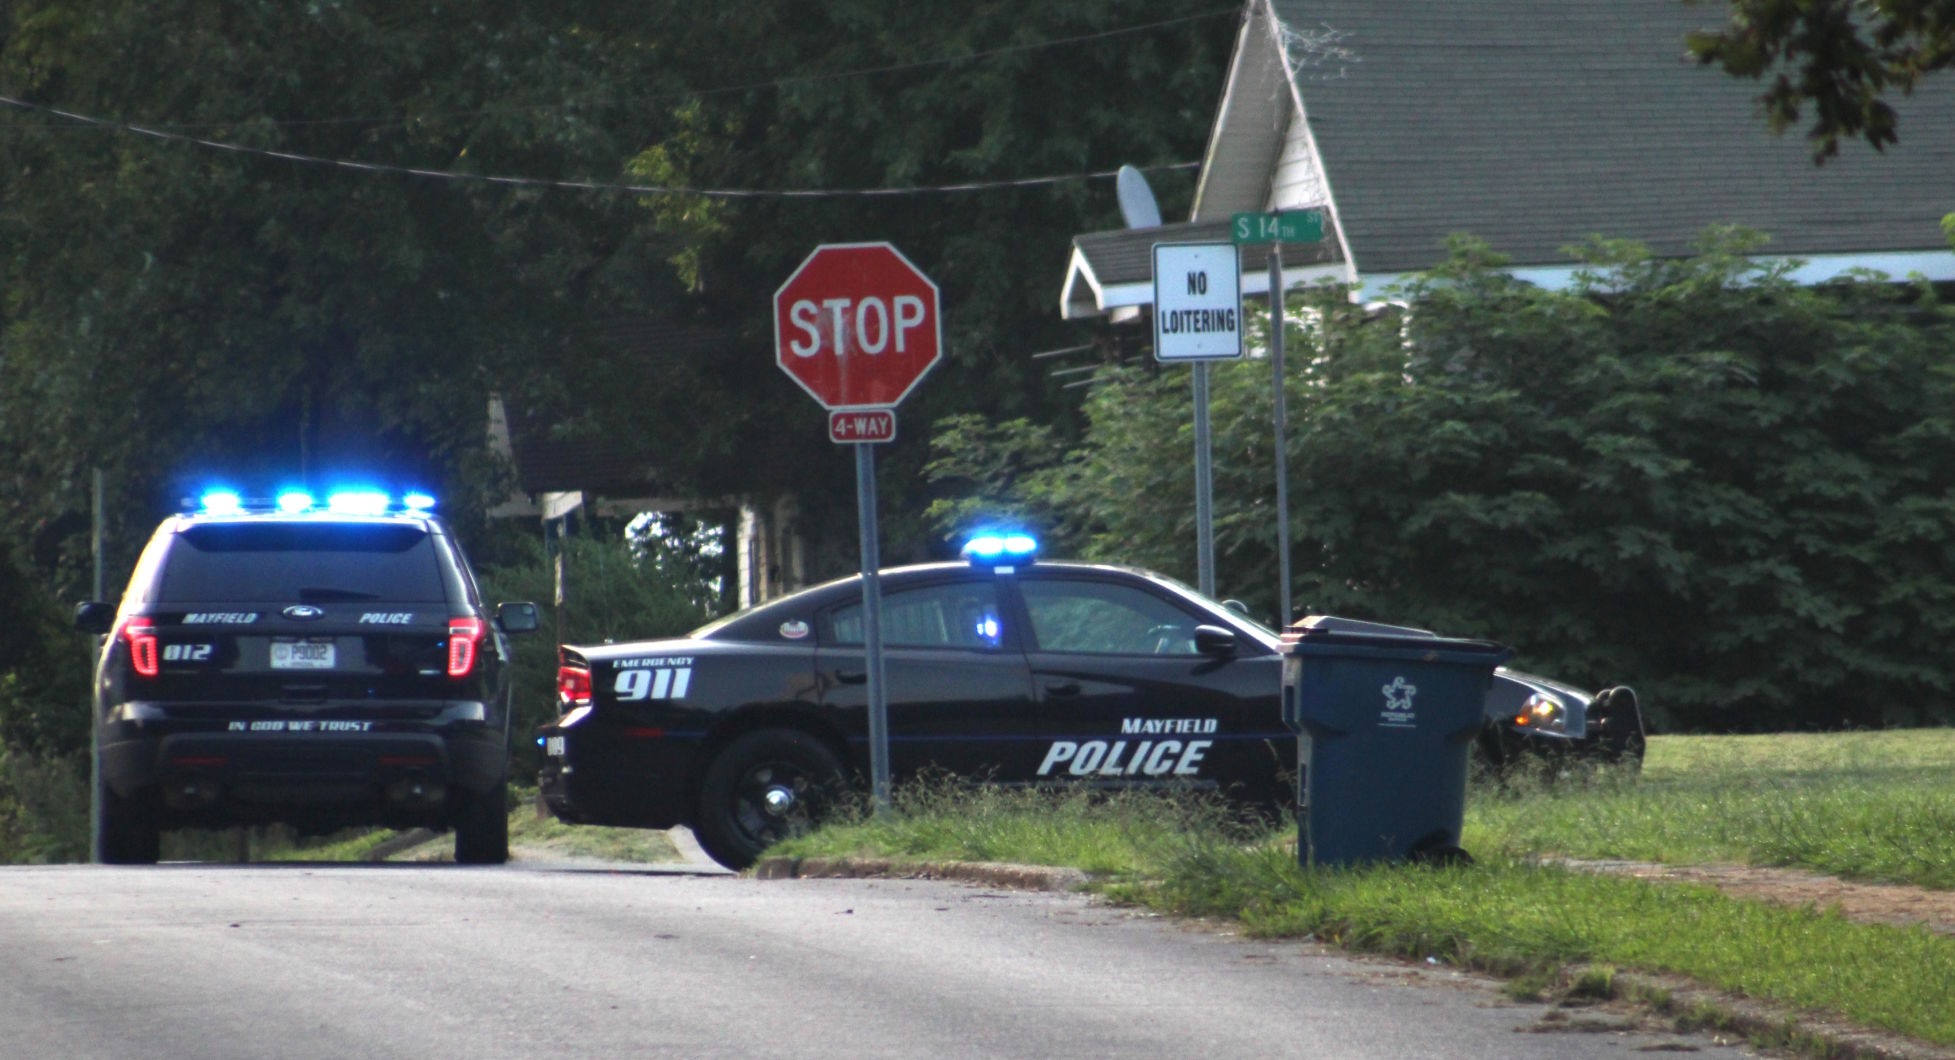 Two-hour standoff results in assault, fleeing charge